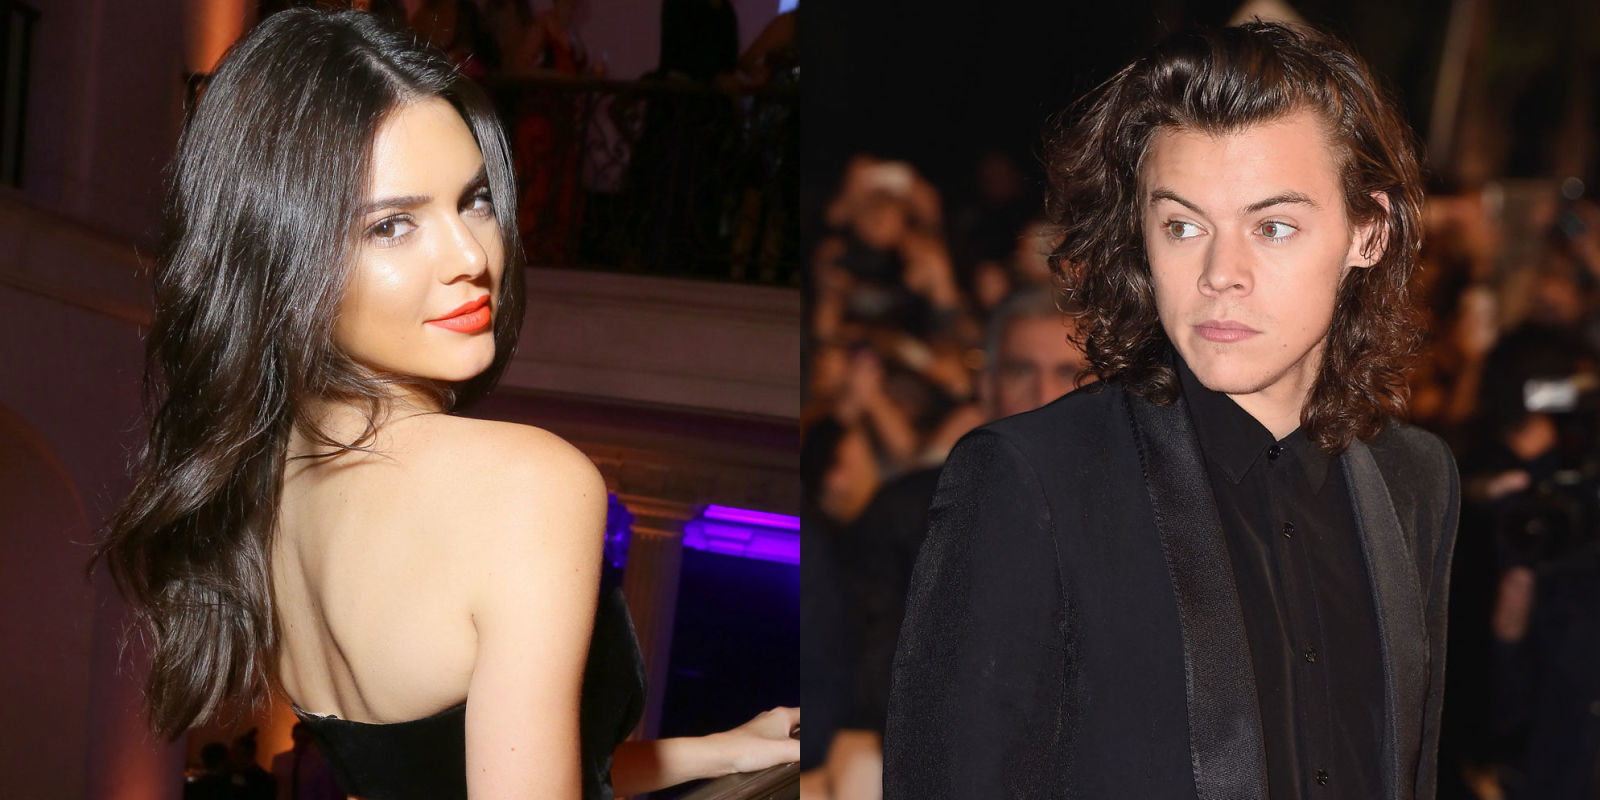 Who is dating harry styles right now